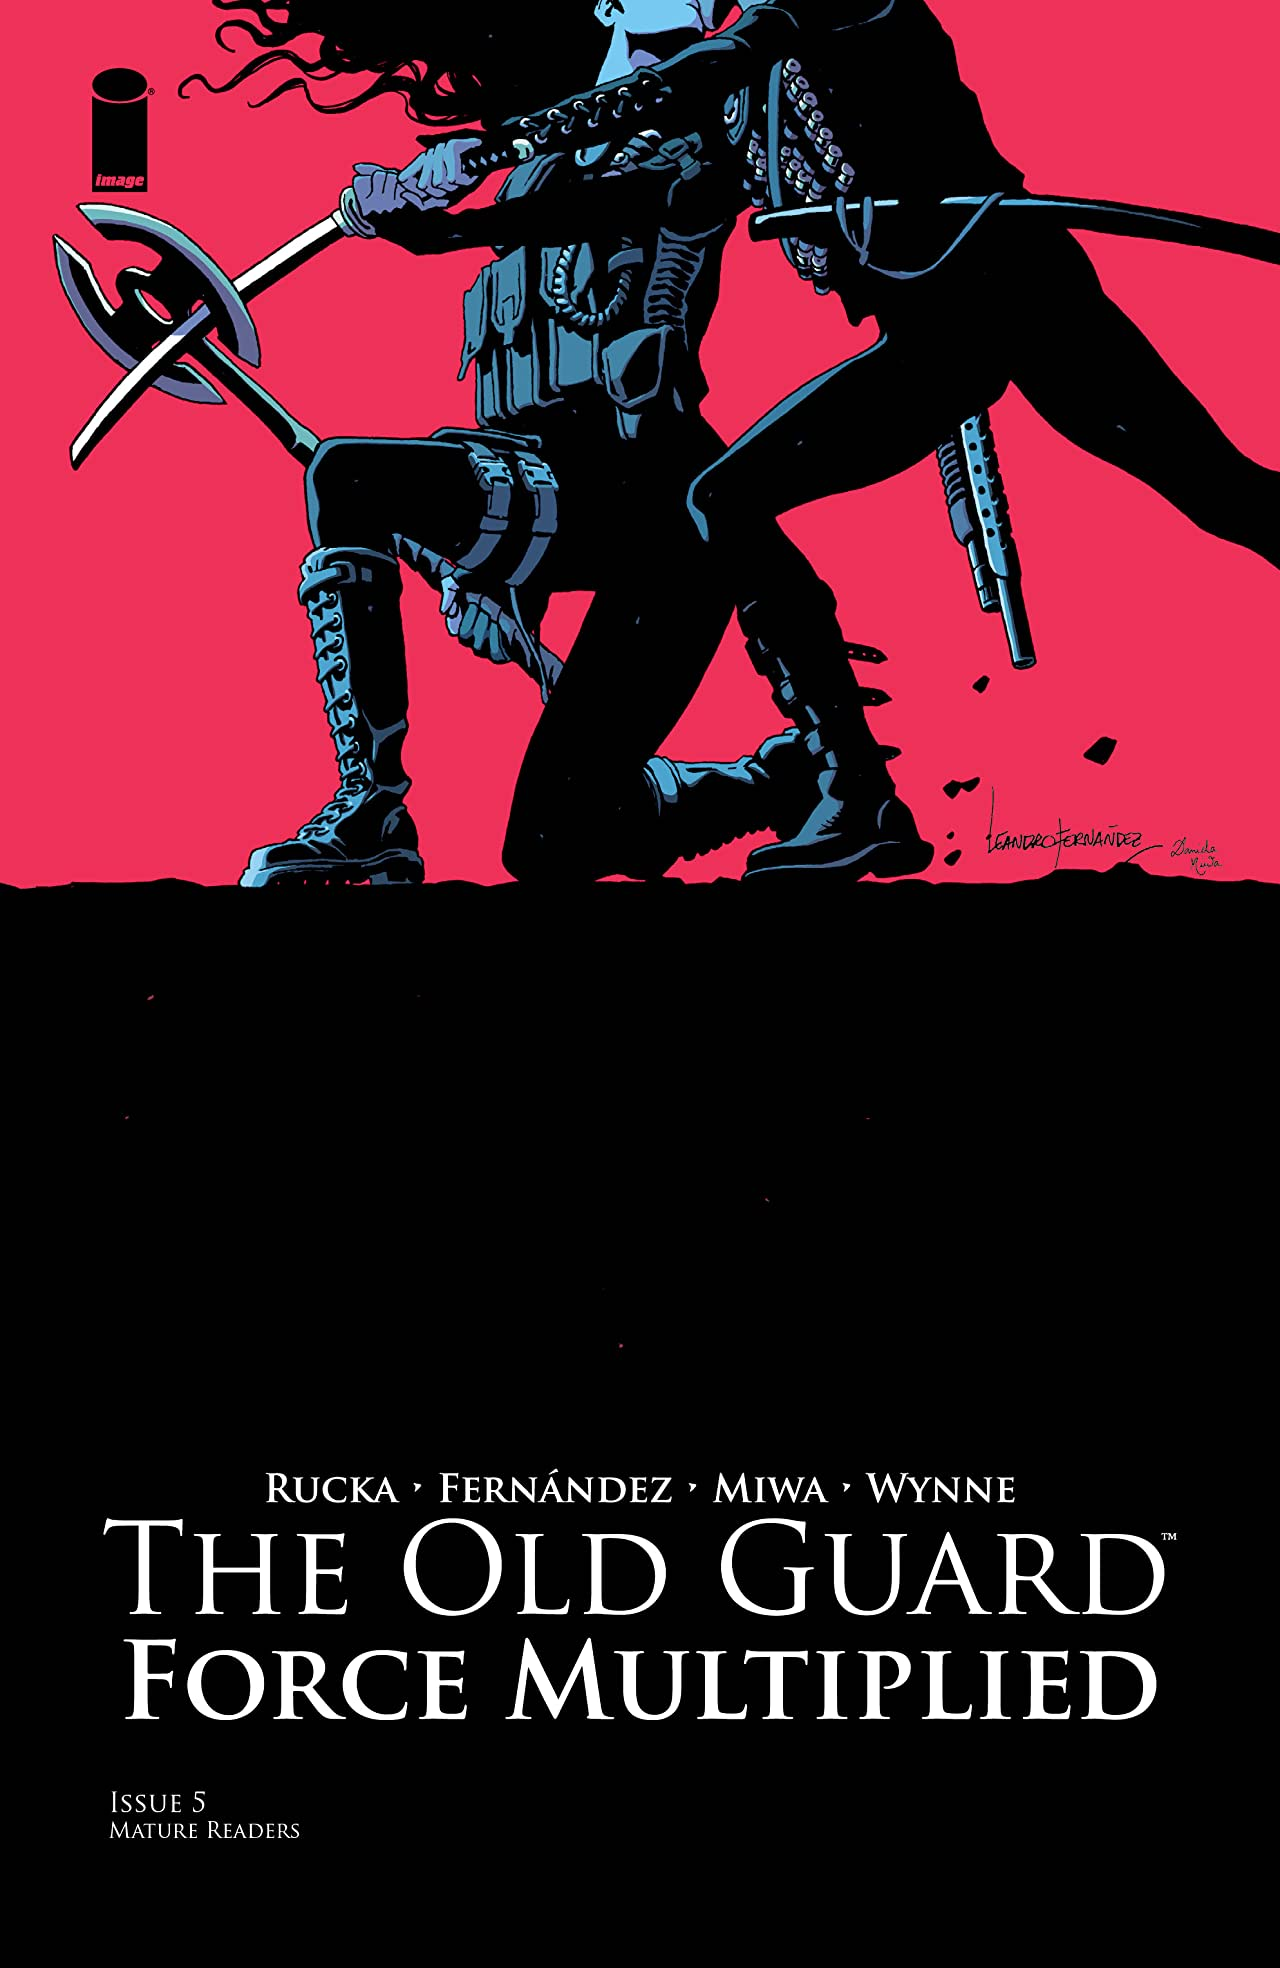 The Old Guard: Force Multiplied No.5